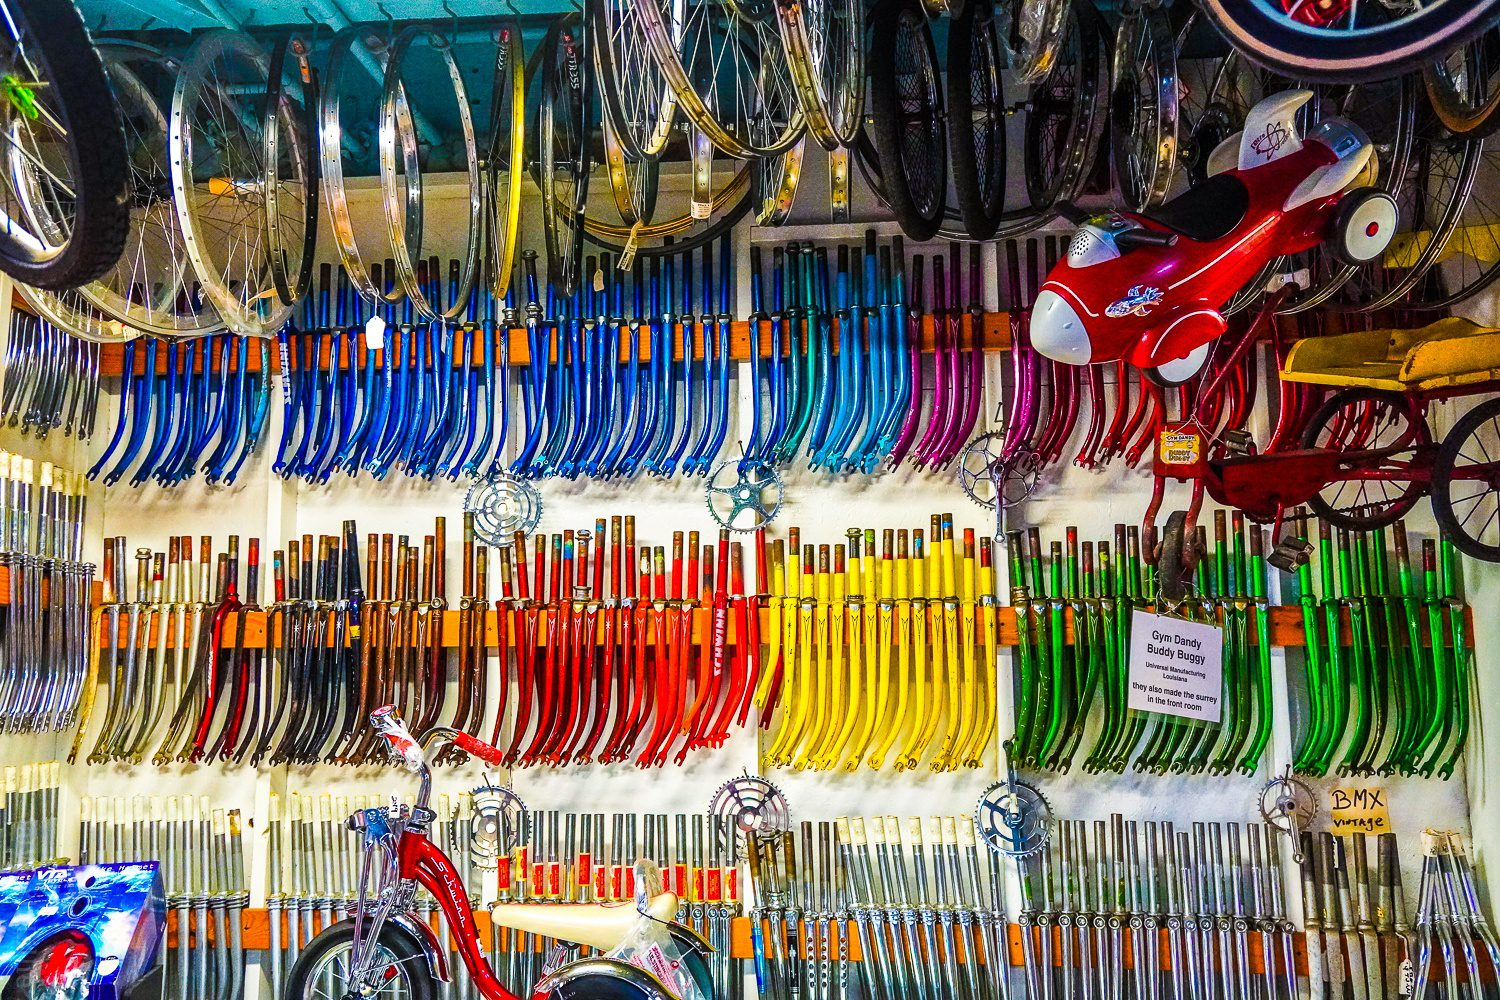 Bike parts in candy colors.